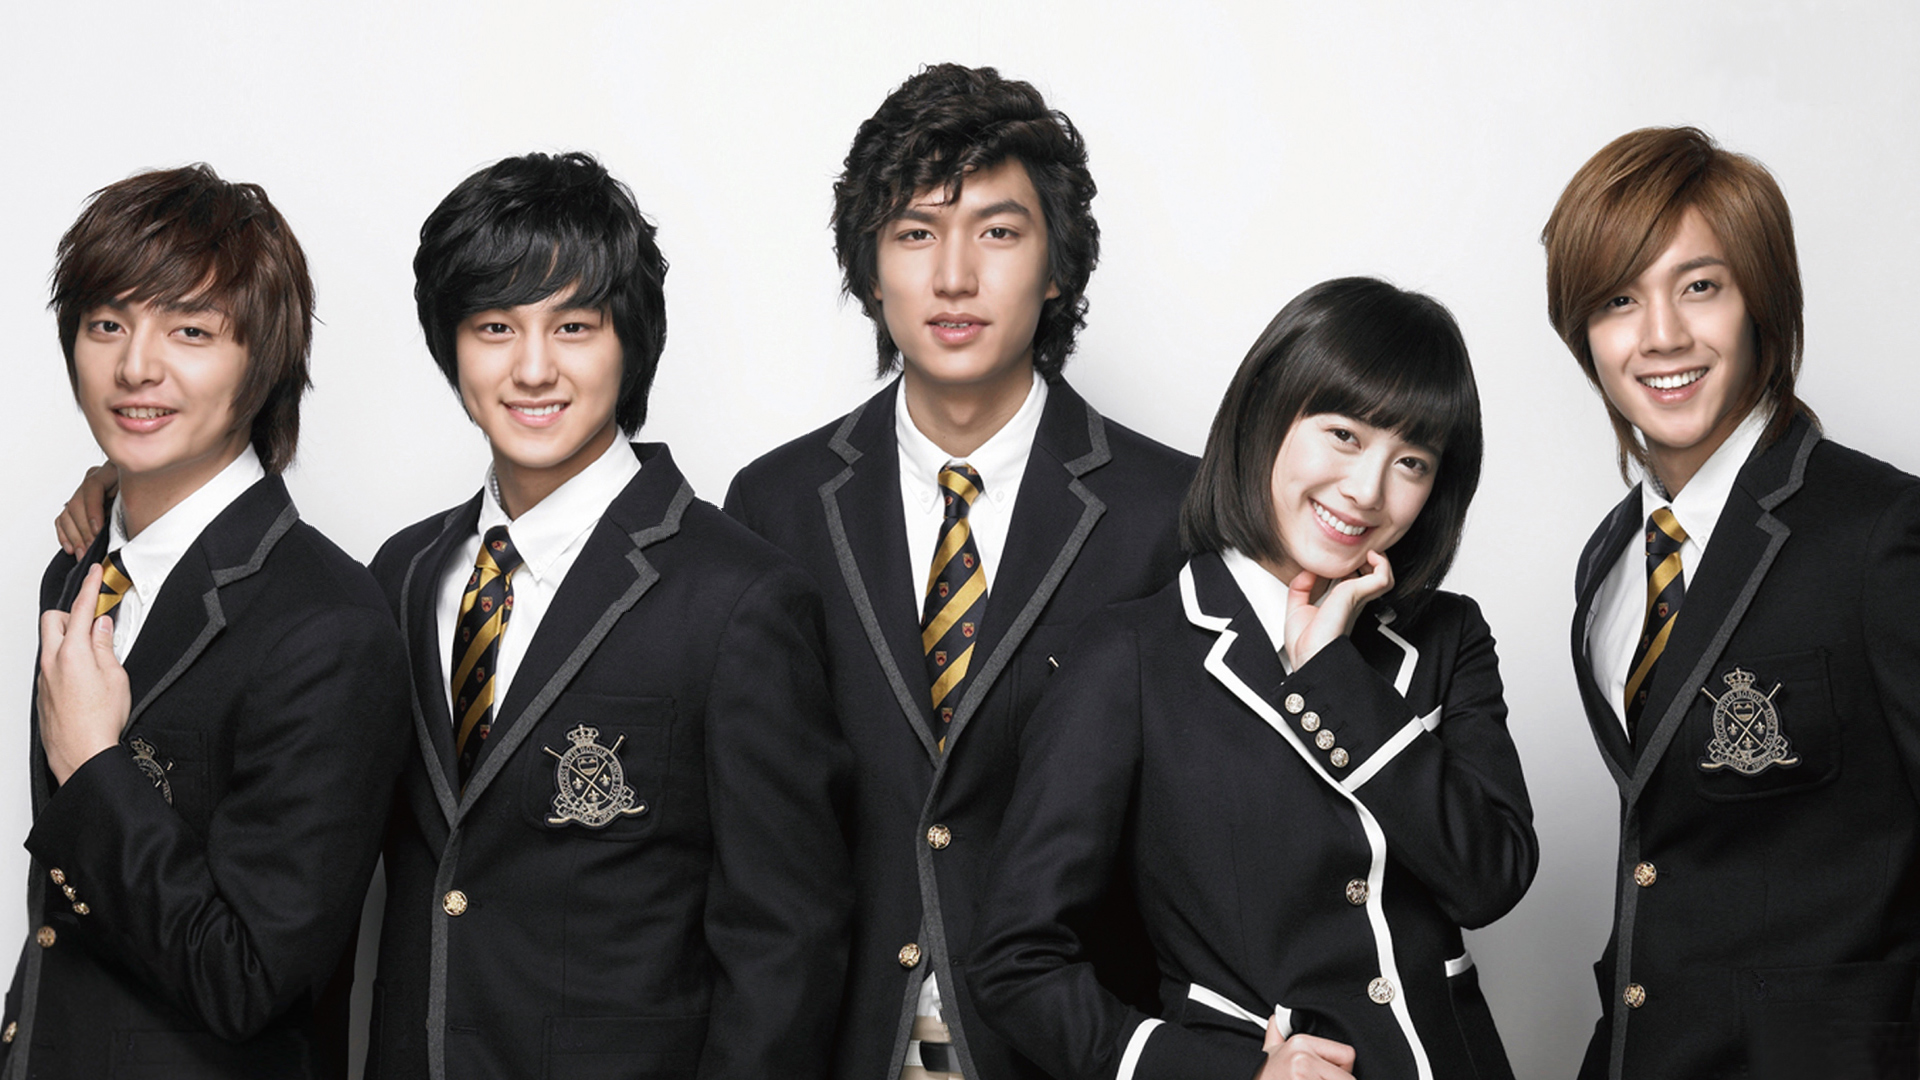 Boys over Flowers - Korean Dramas Wallpaper (32444325) - Fanpop ...boys over flowers